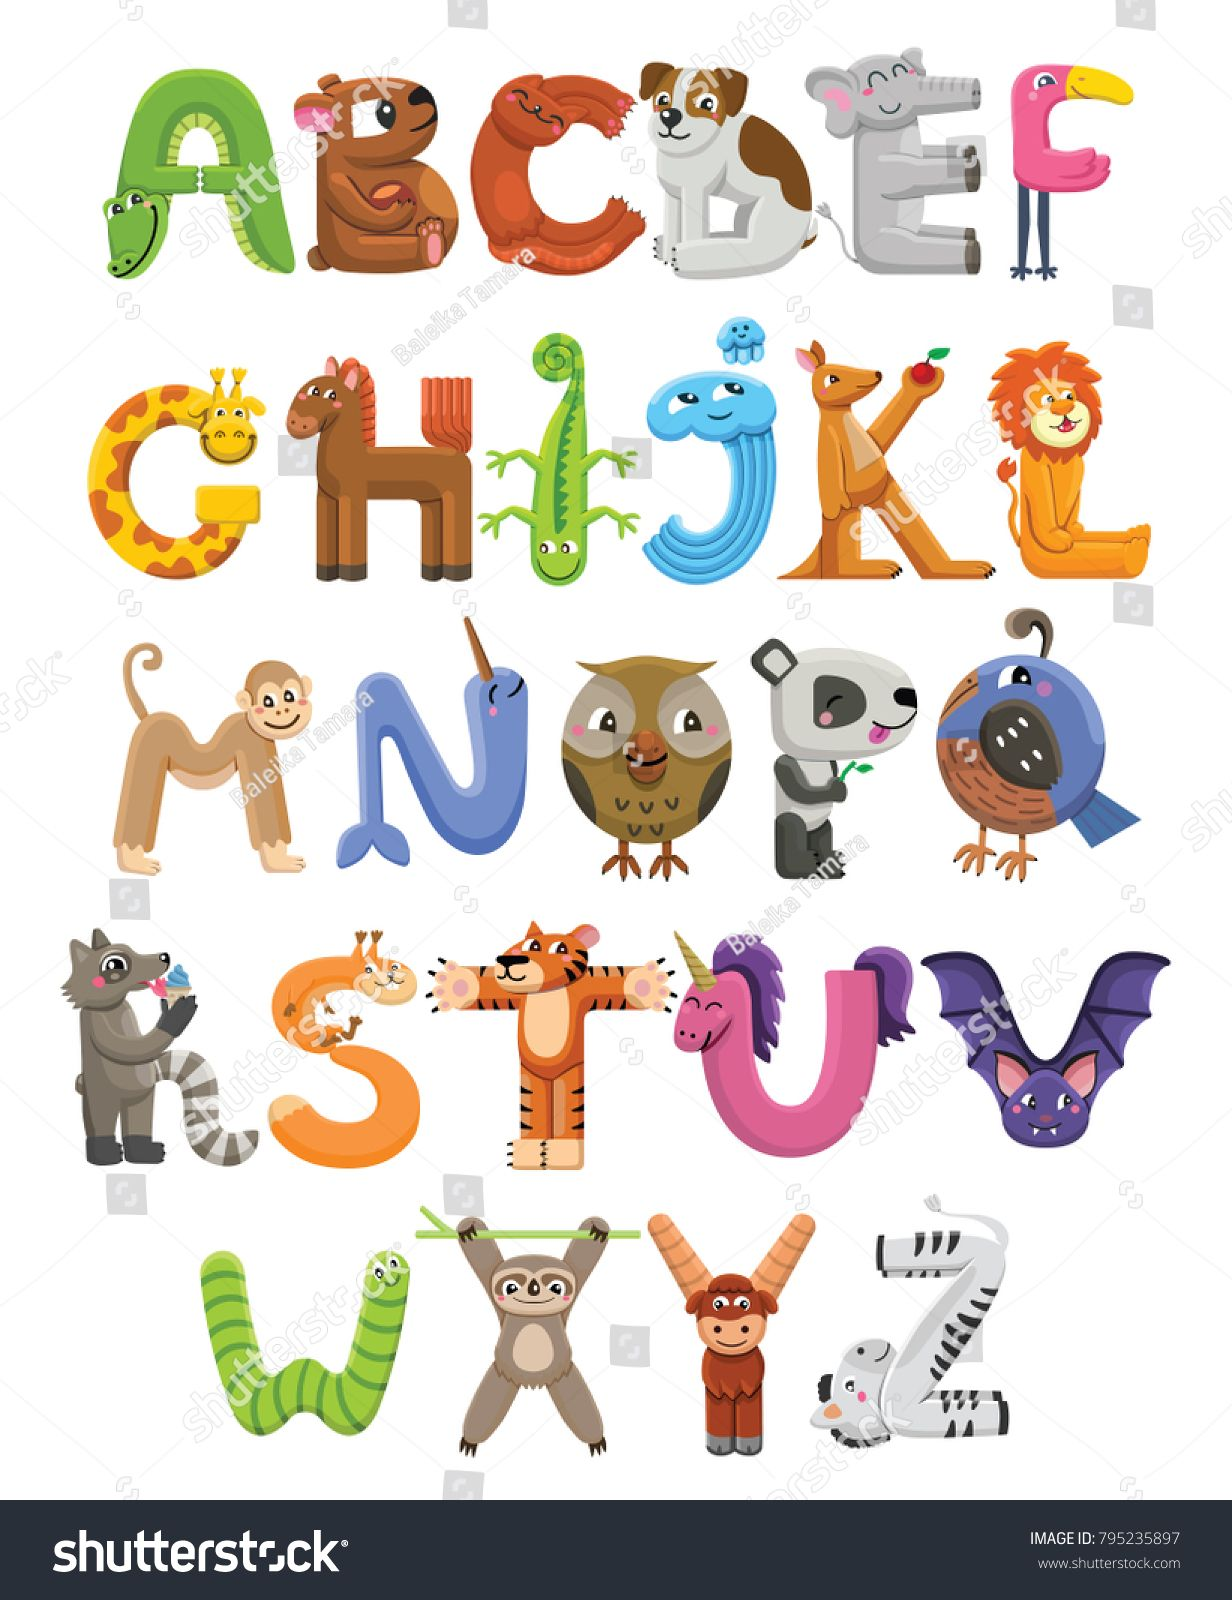 Zoo alphabet. Animal alphabet. Letters from A to Z. Cartoon cute.